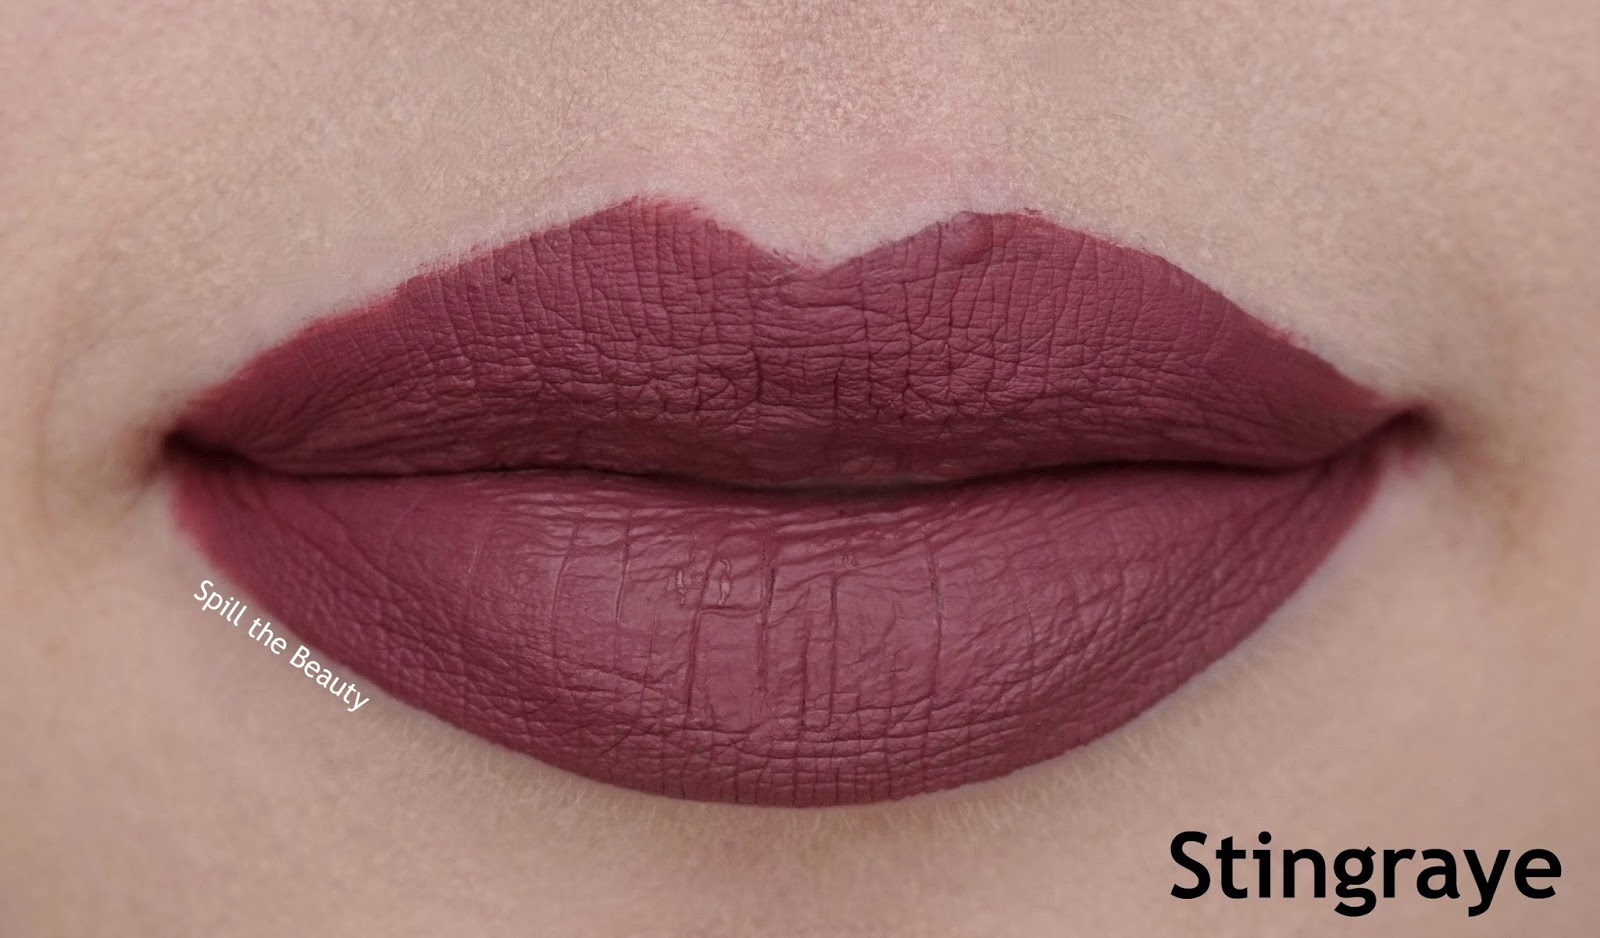 colourpop ultra matte lip review swatches 5 stingraye - lips